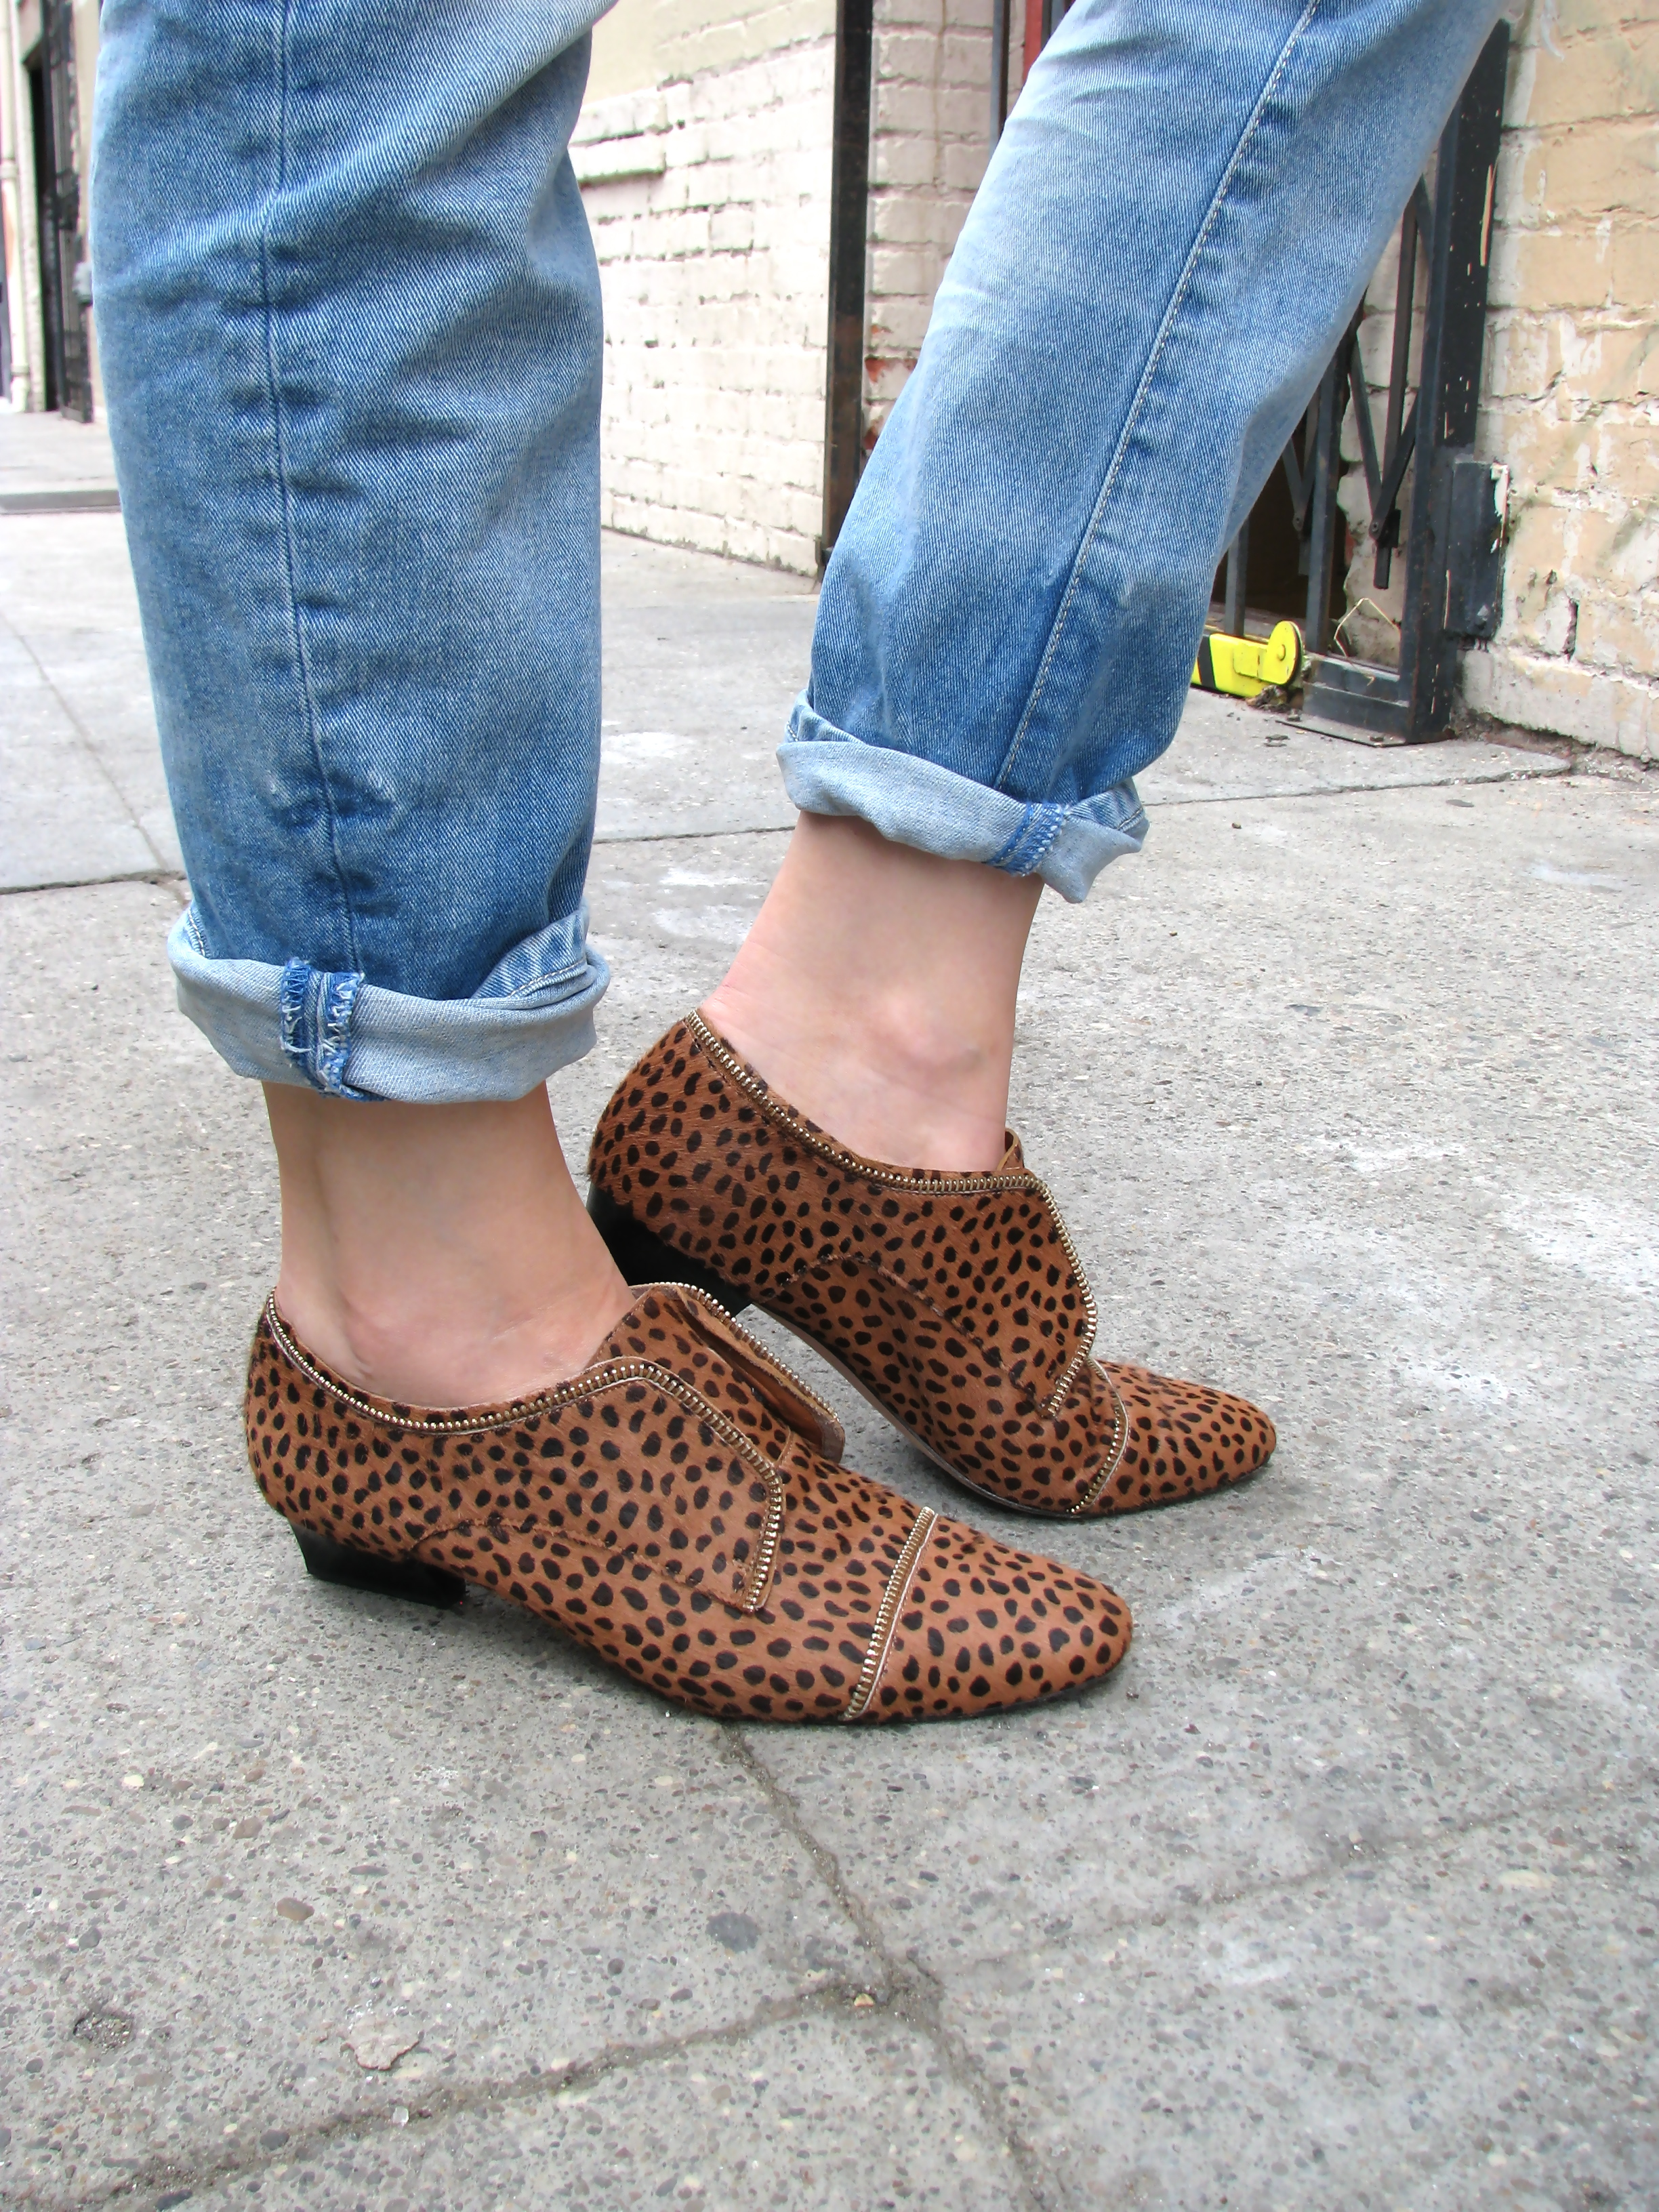 Boyfriend jeans and animal print oxfords